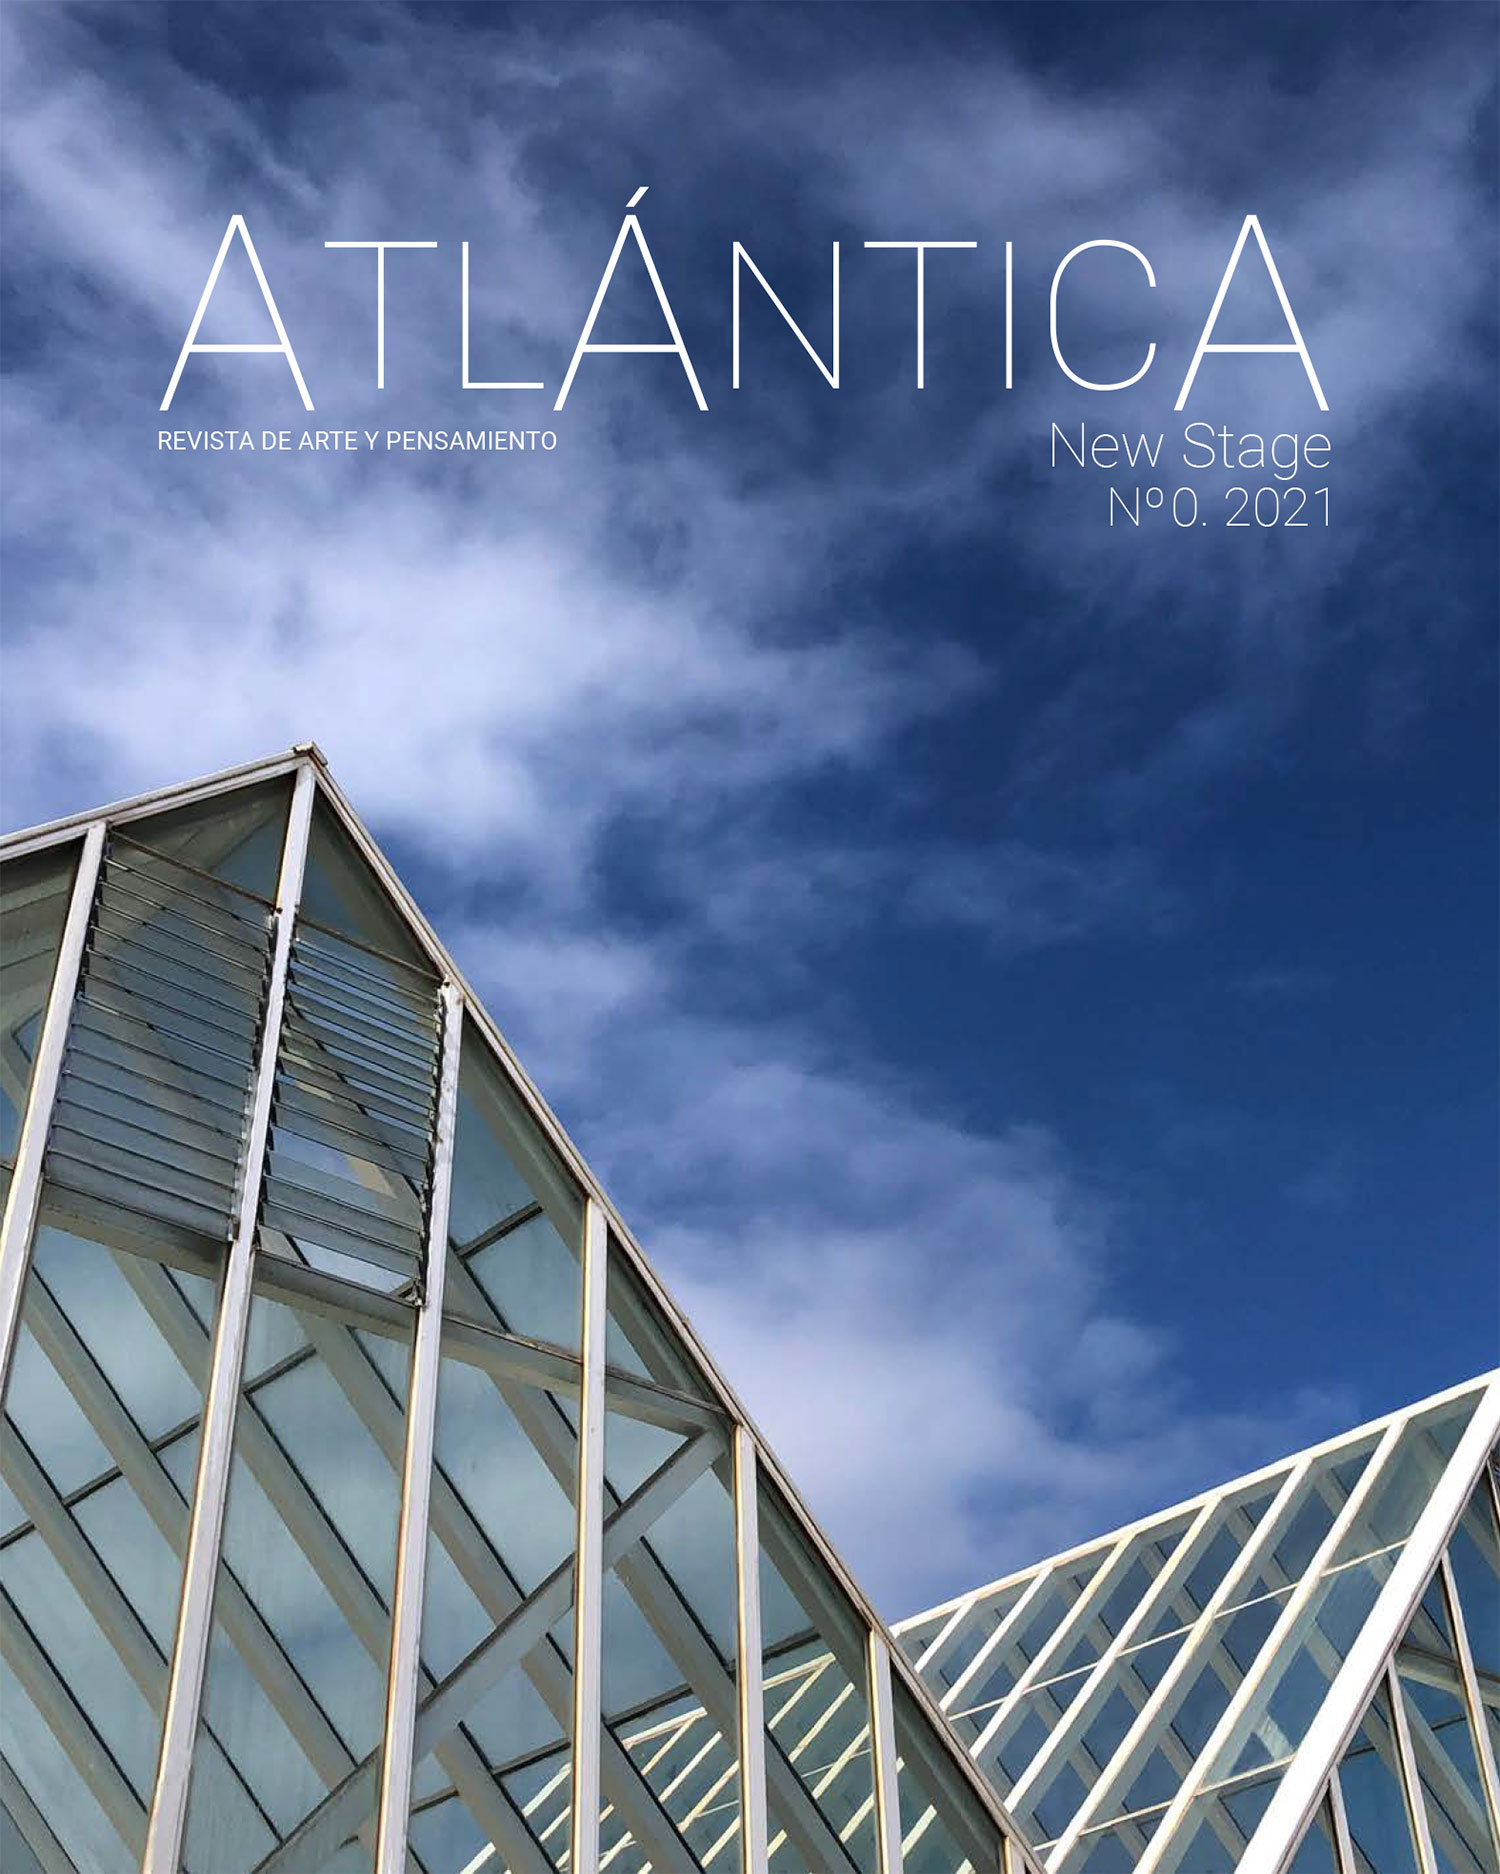 First issue cover of the New Stage of Atlántica Journal